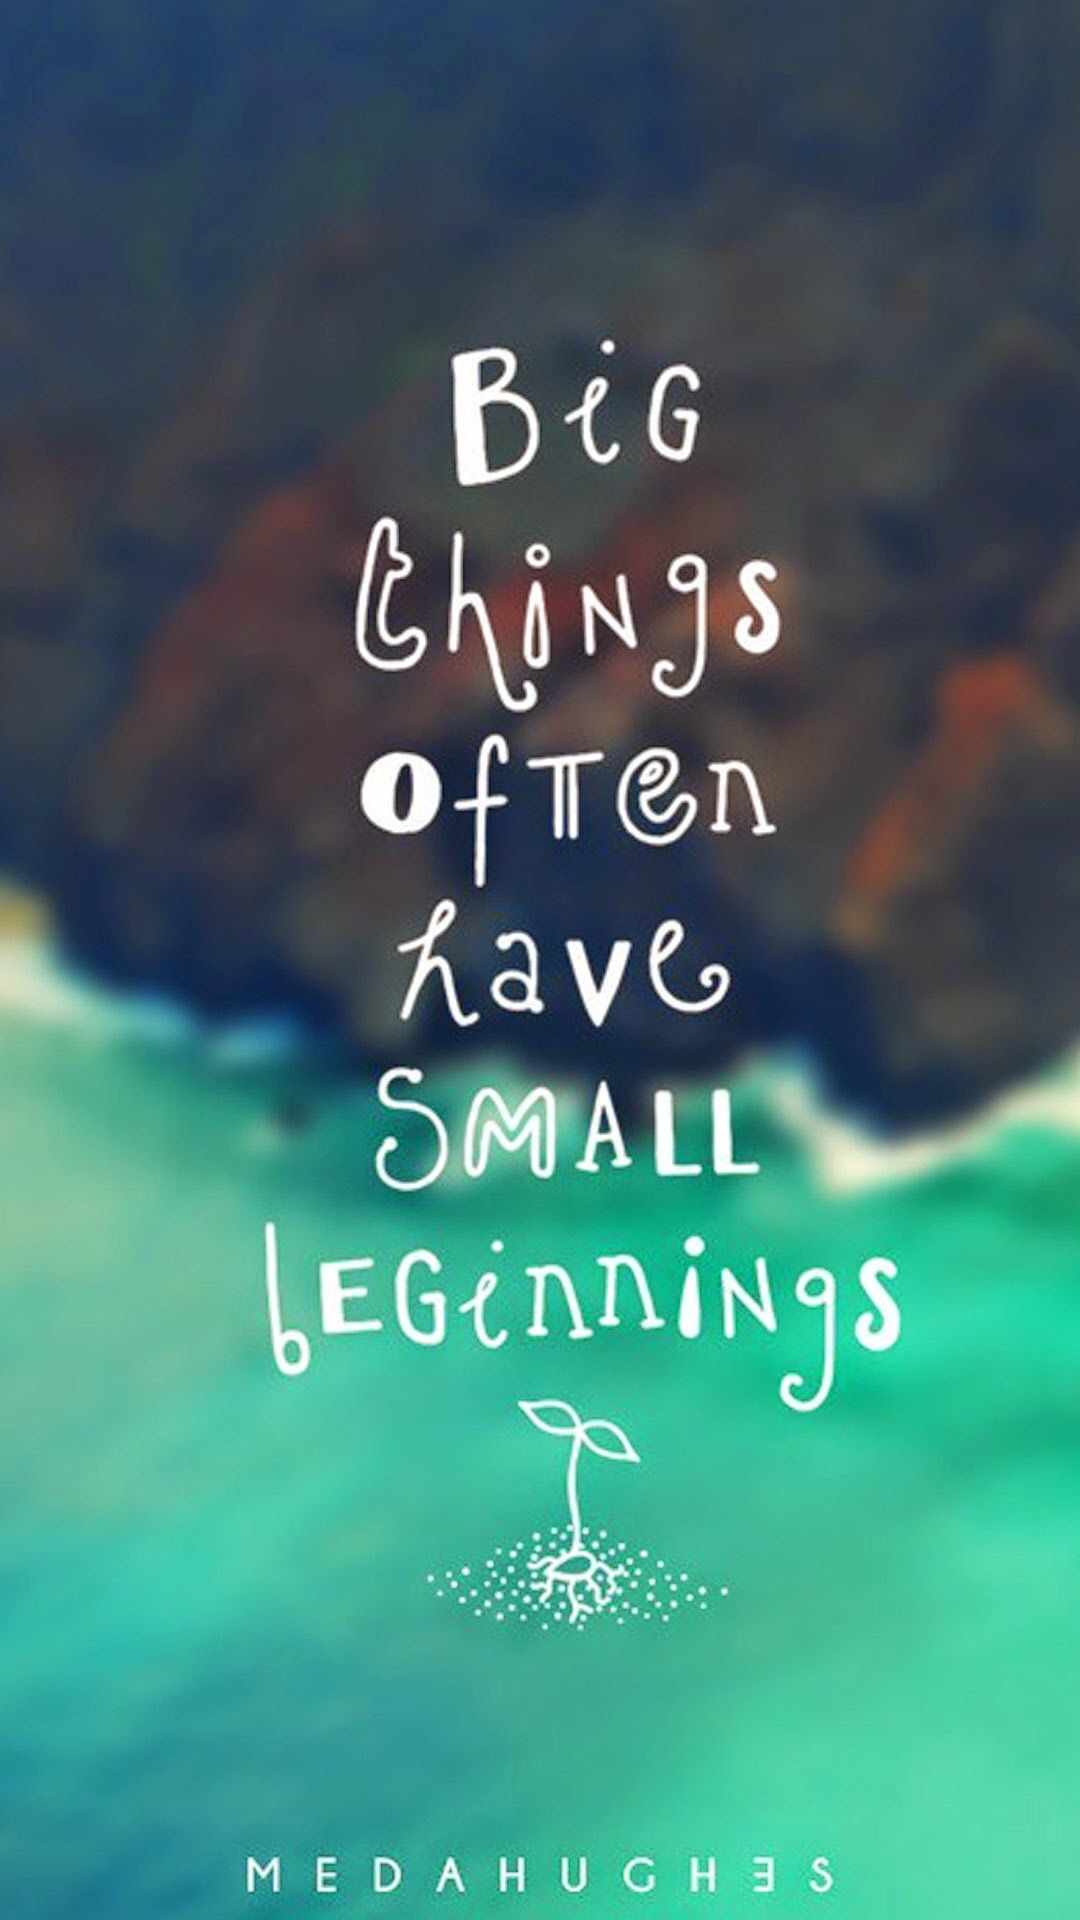 Best Wallpapers Inspirational Quotes